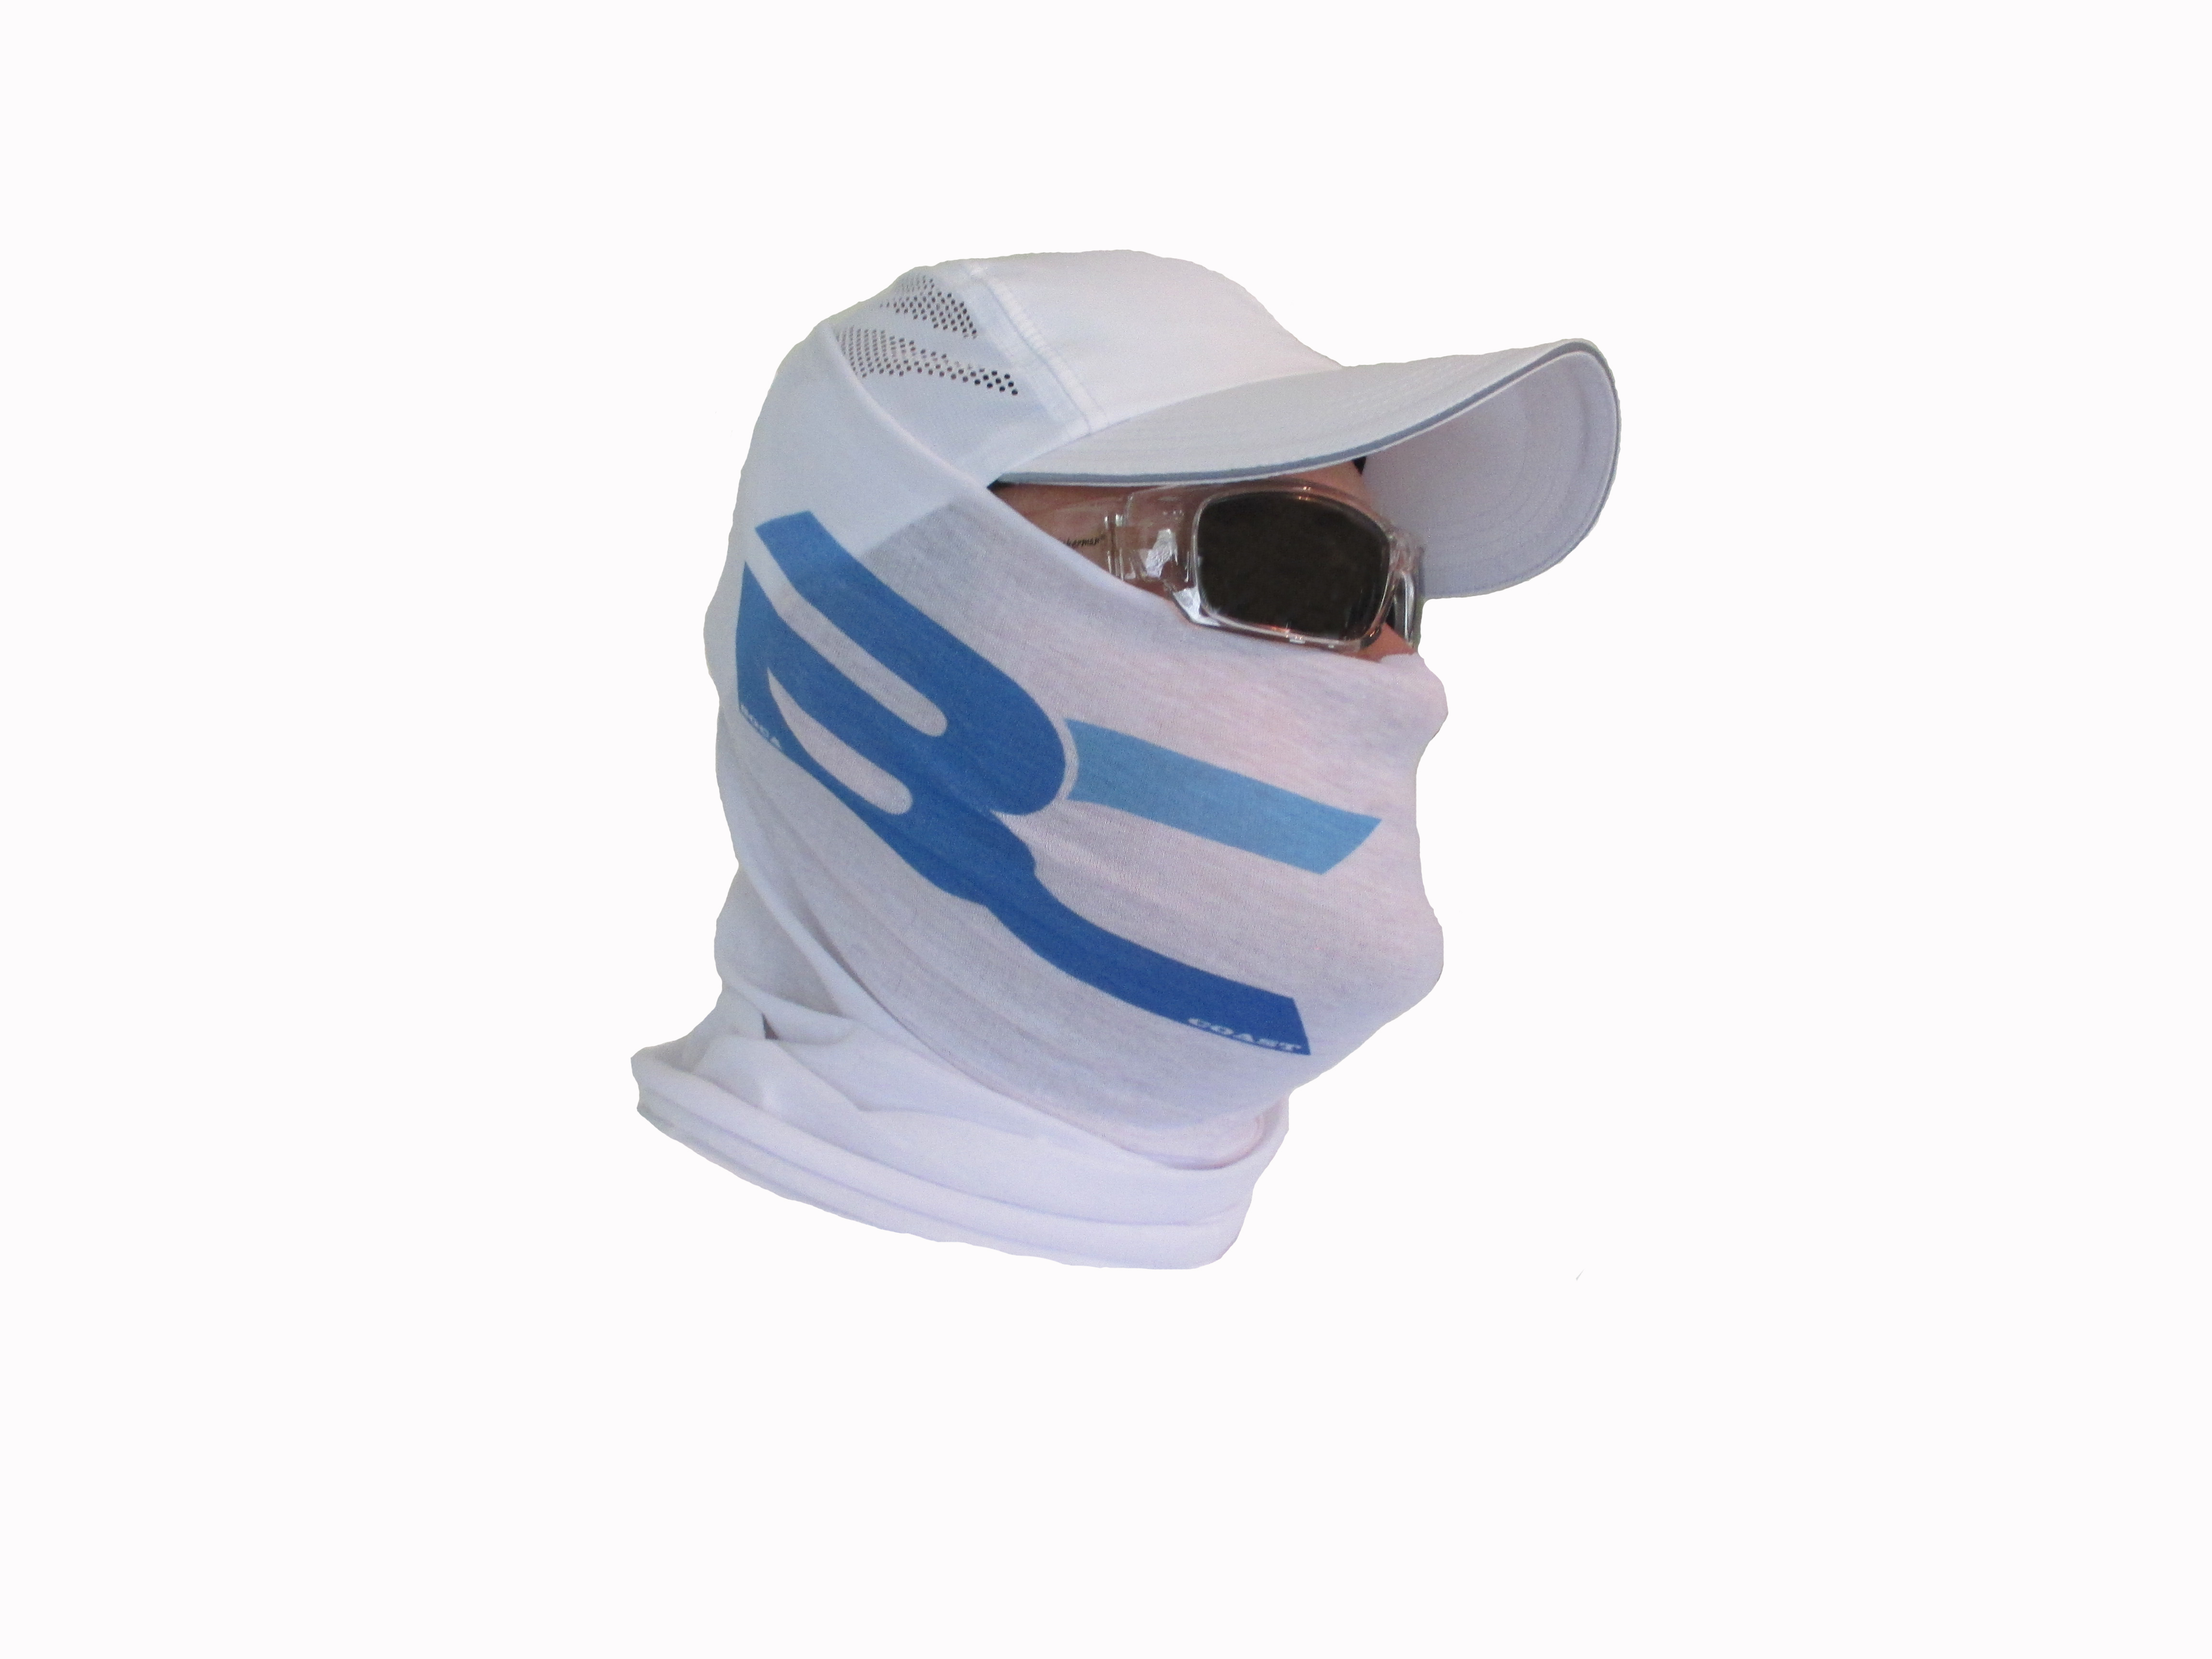 BC sun gaiter buff for your face